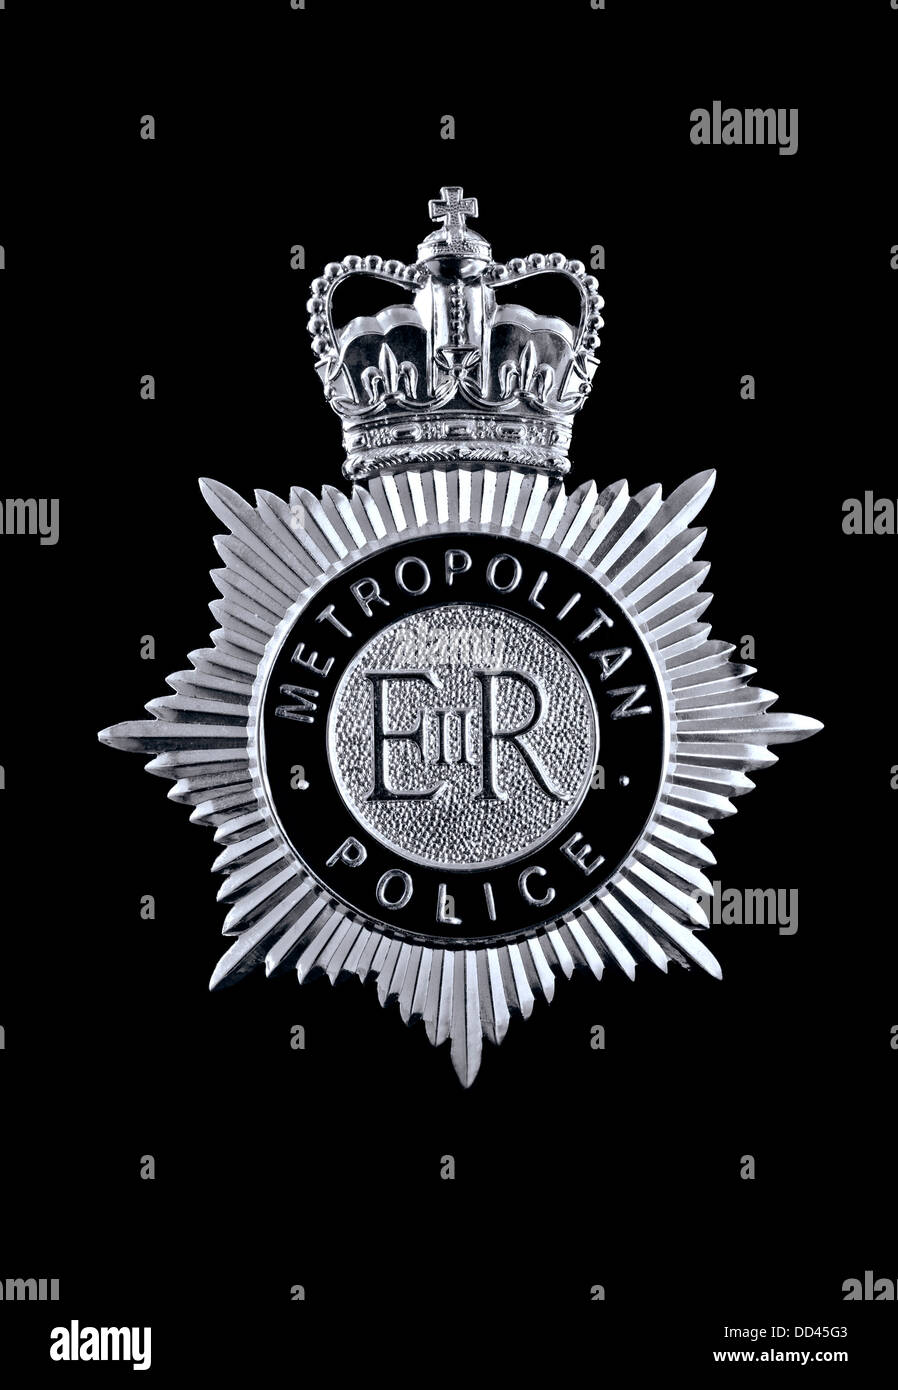 Close view on Metropolitan Police helmet badge on black background - Stock Image